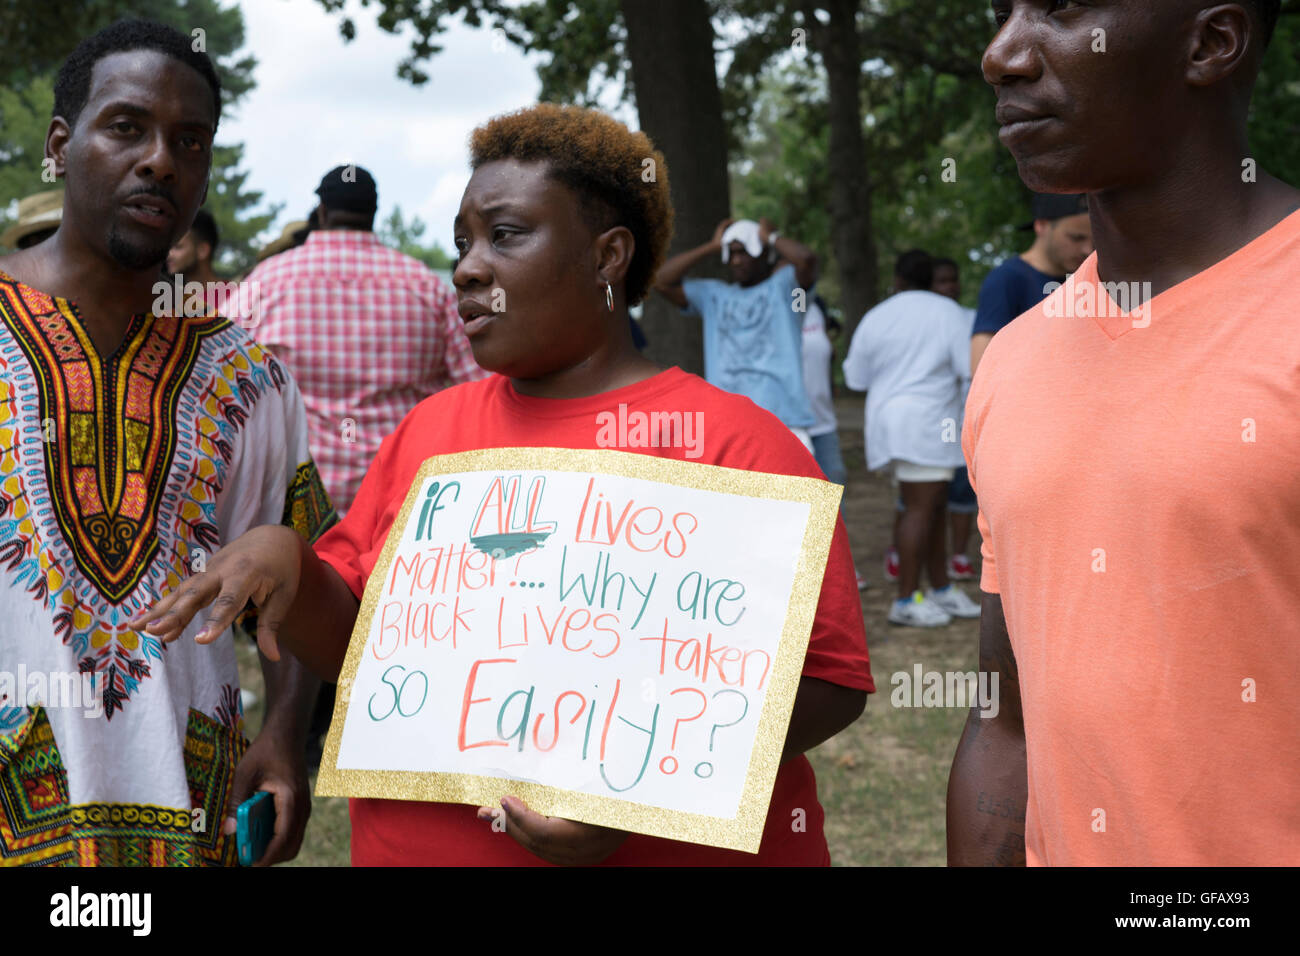 Cherisse, center, holds a sign declaring her sentiment about Black Lives Matter at a rally in Tupelo, Ms. on Saturday, - Stock Image